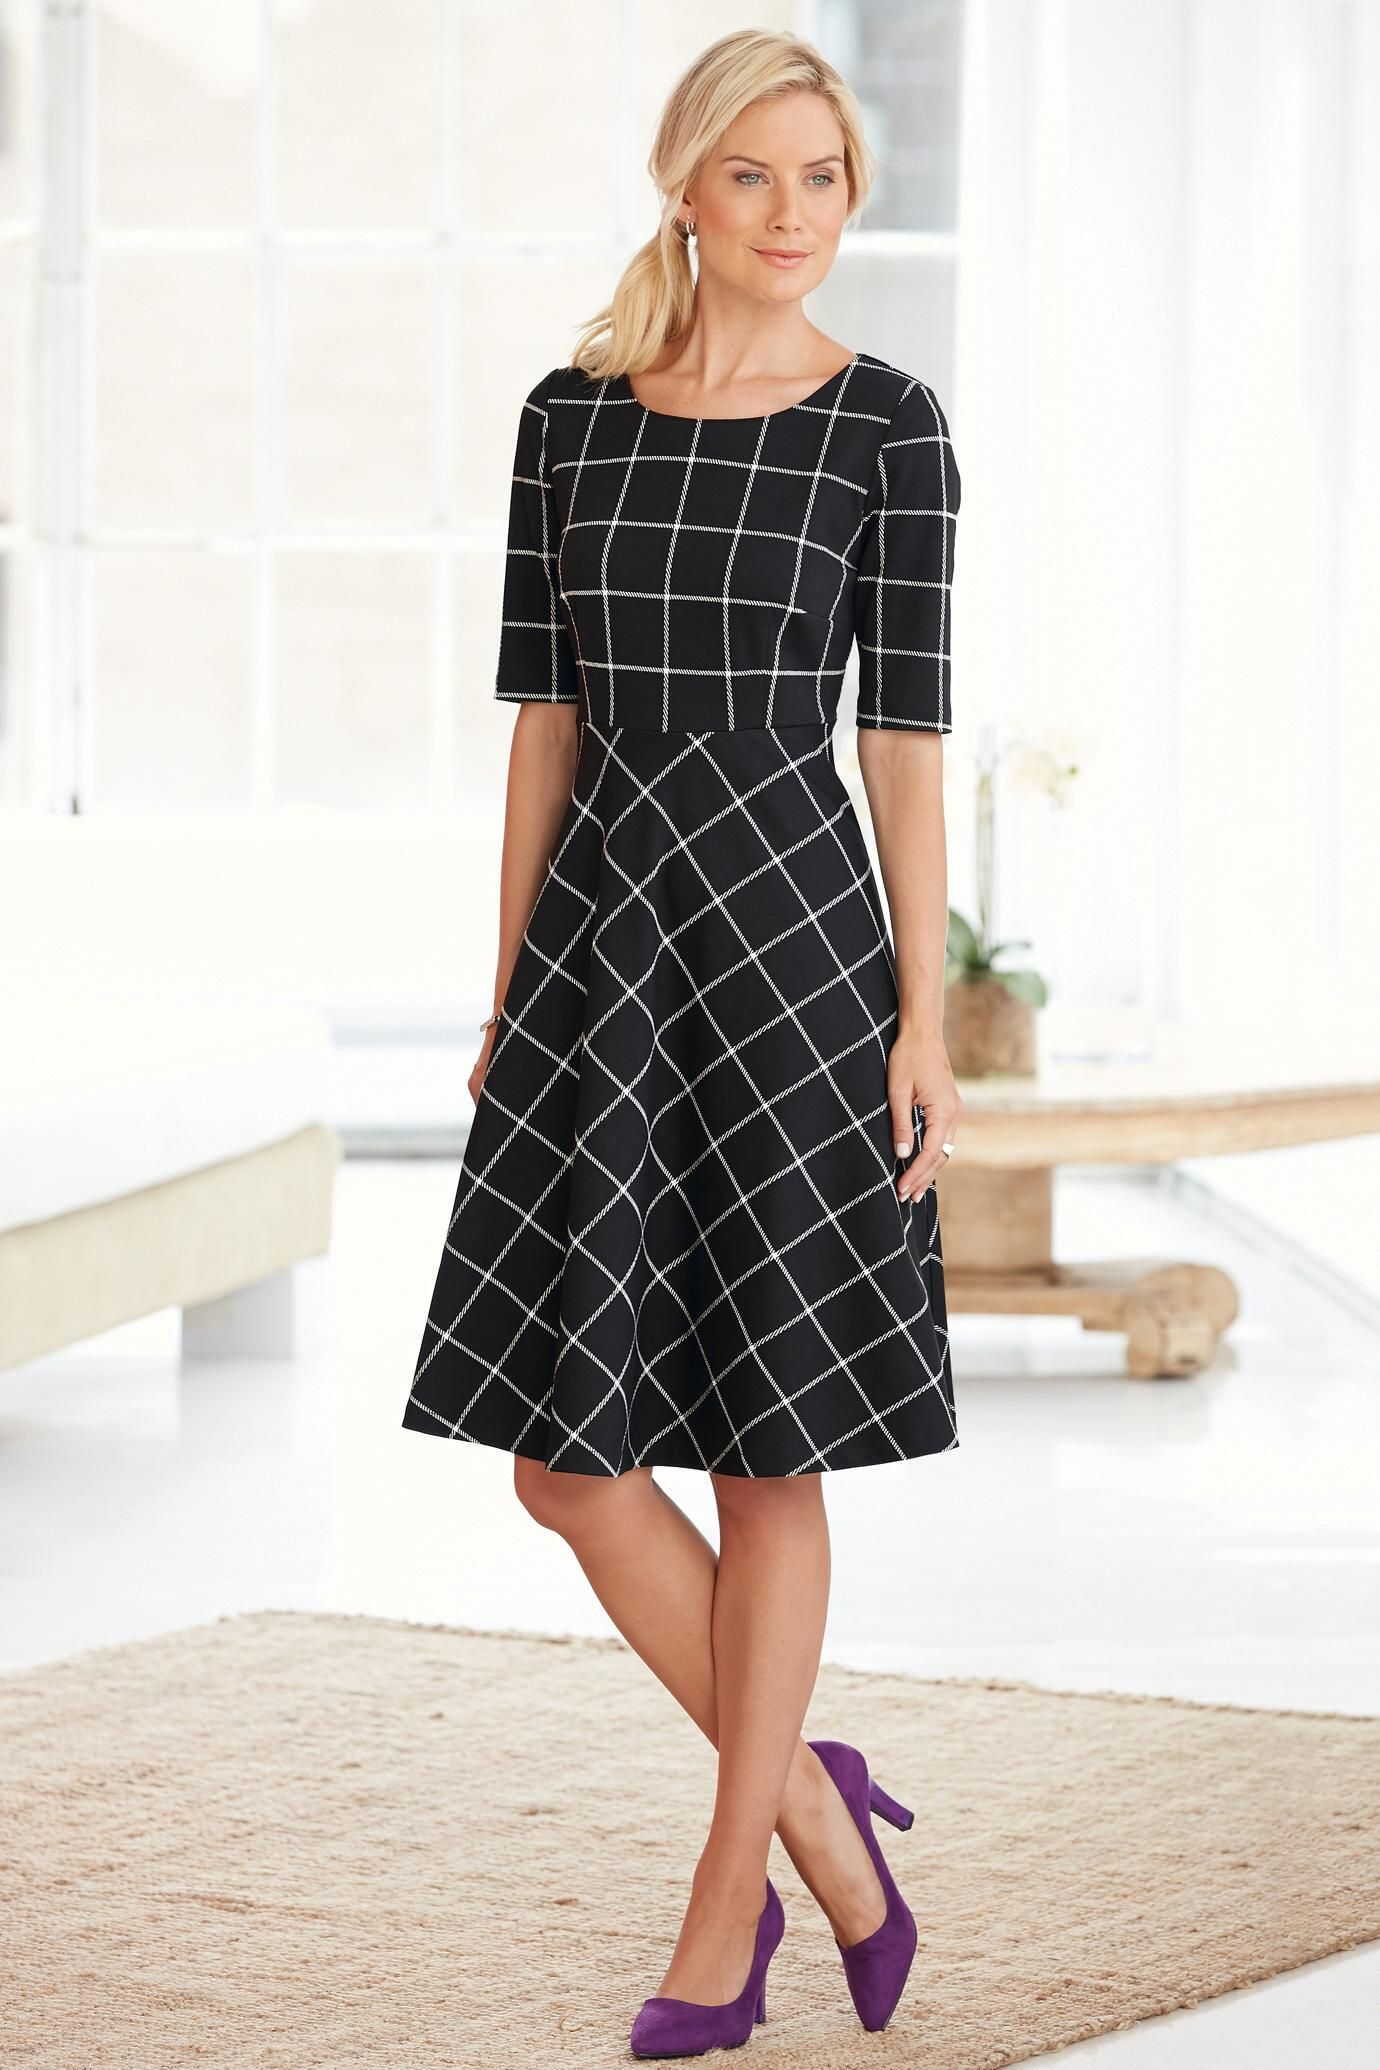 bc3beb5ea253 Short Sleeve Ponte Knit Fit & Flare Dress in a classic black & white  pattern.